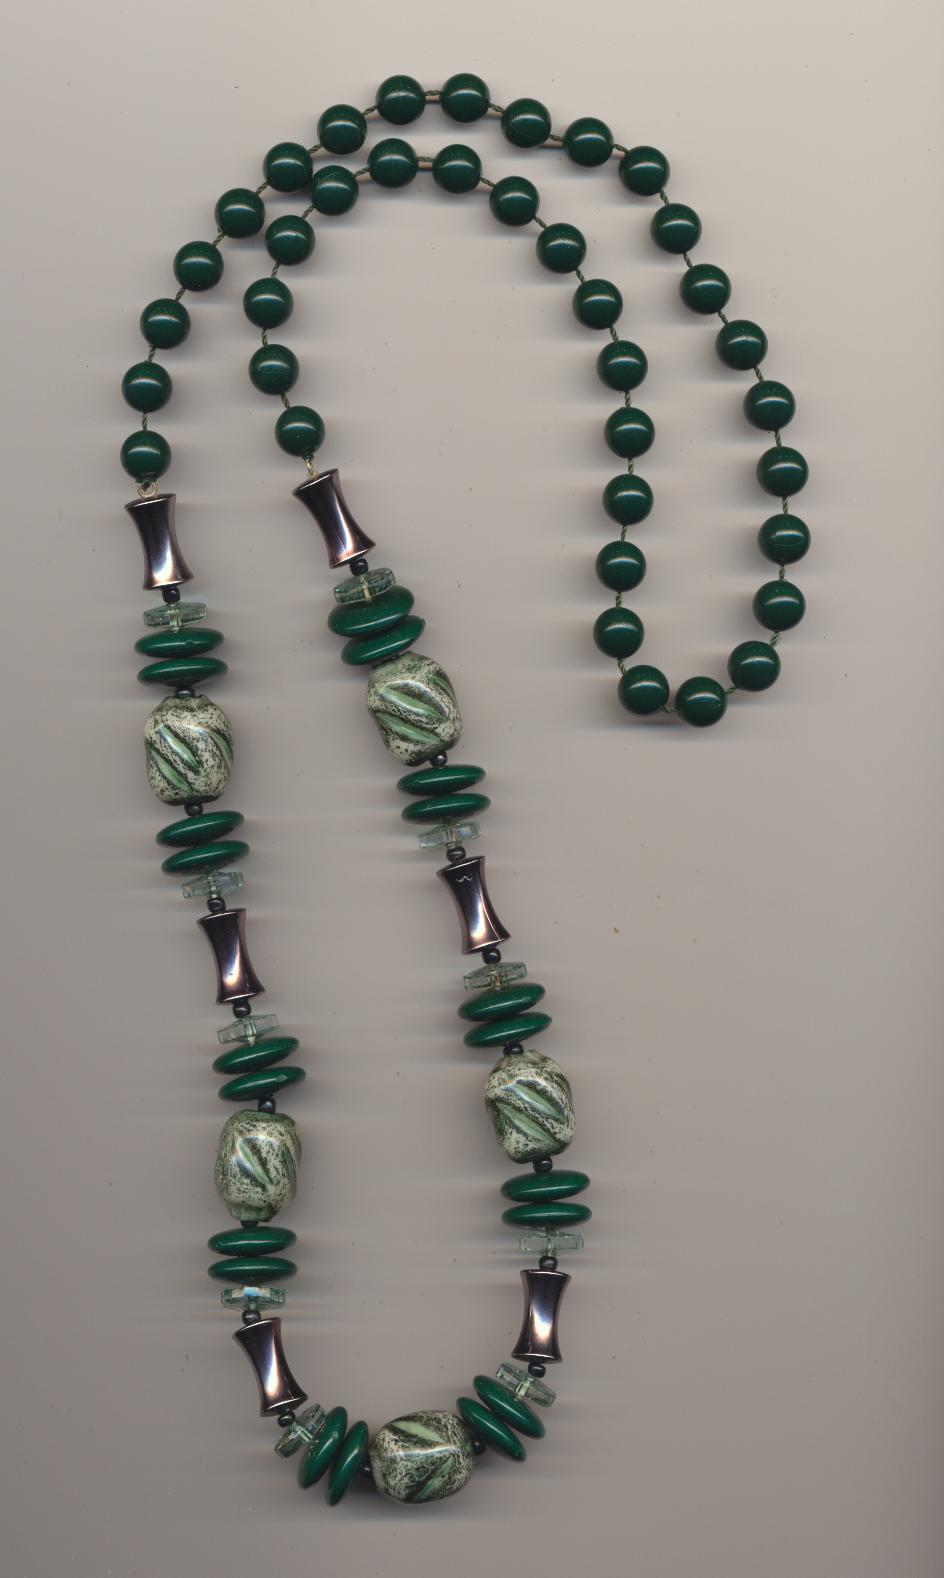 up shamrock on green necklace beads neckless light